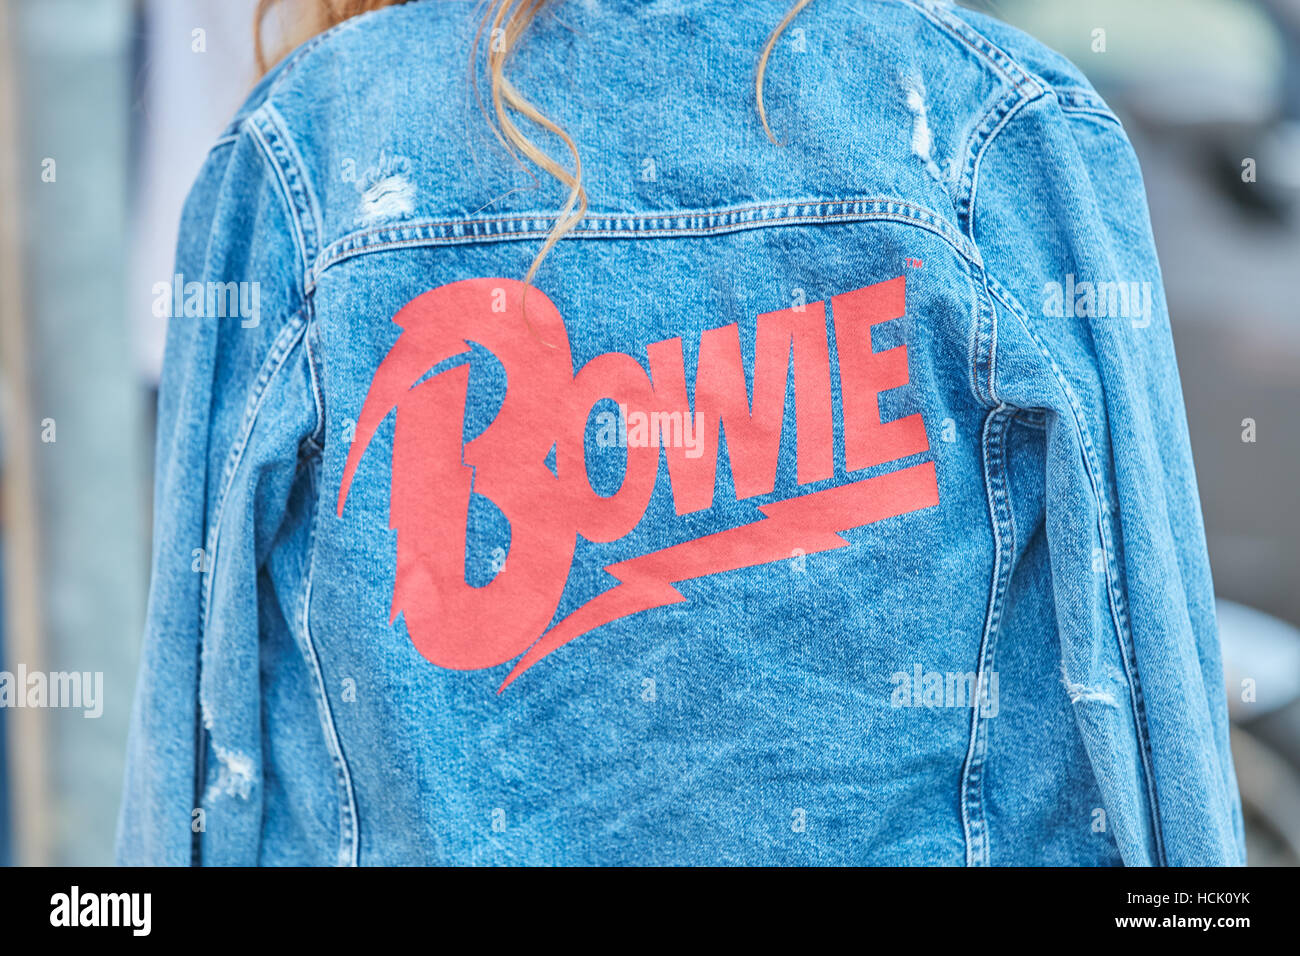 Woman with blue jeans jacket with red Bowie writing before Jil Sander fashion show, Milan Fashion Week street style - Stock Image